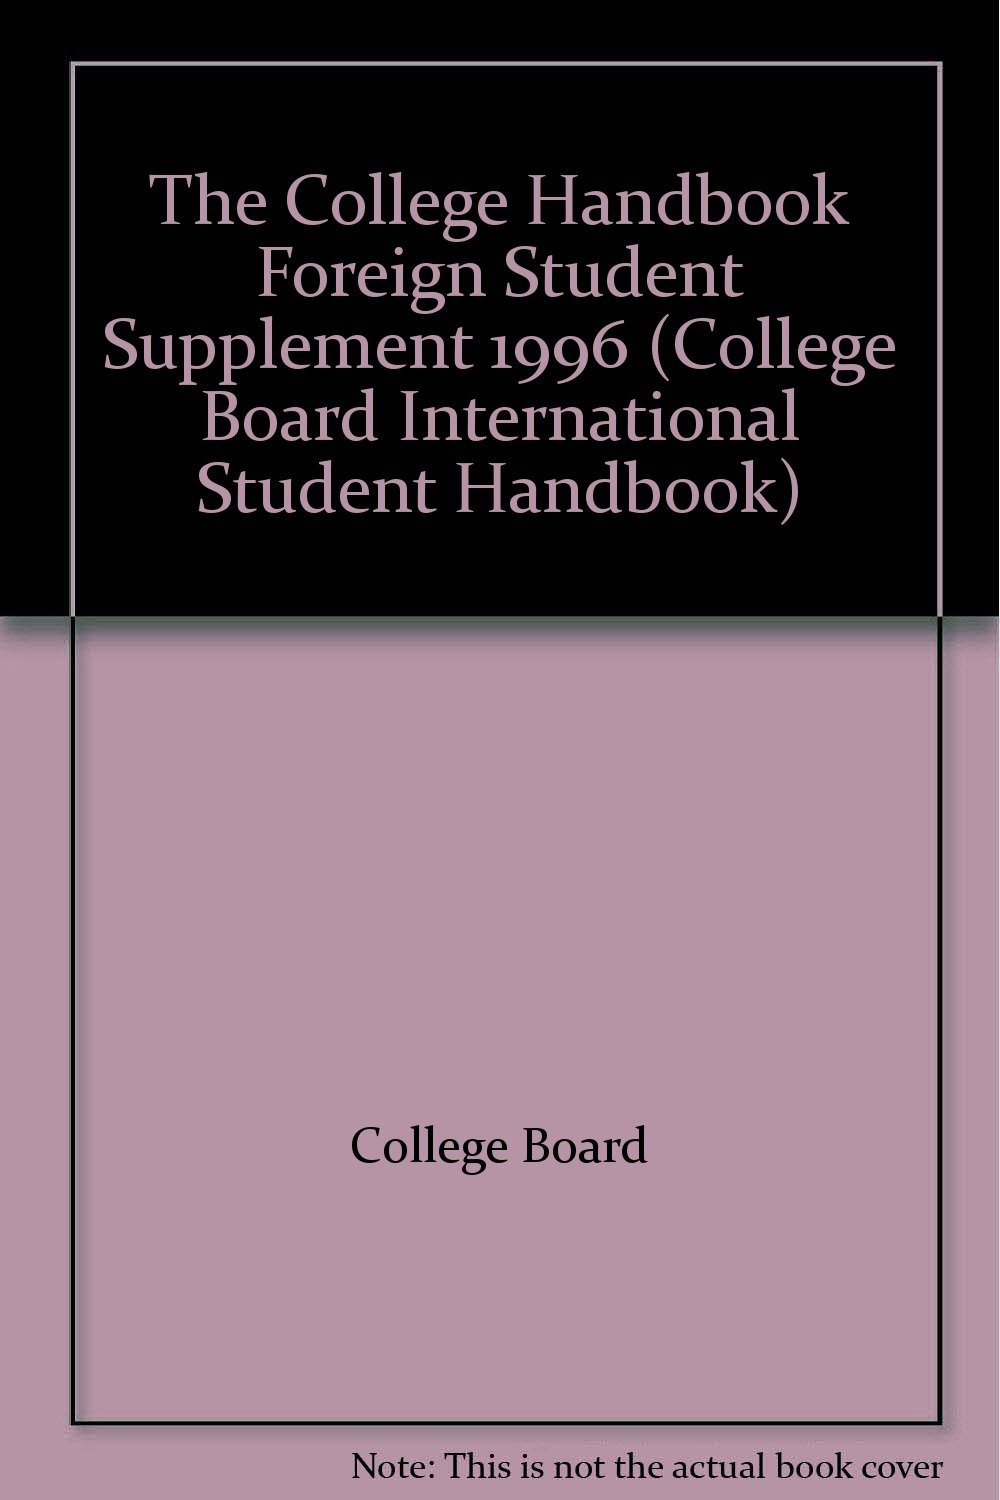 the-college-handbook-foreign-student-supplement-1996-college-board-international-student-handbook